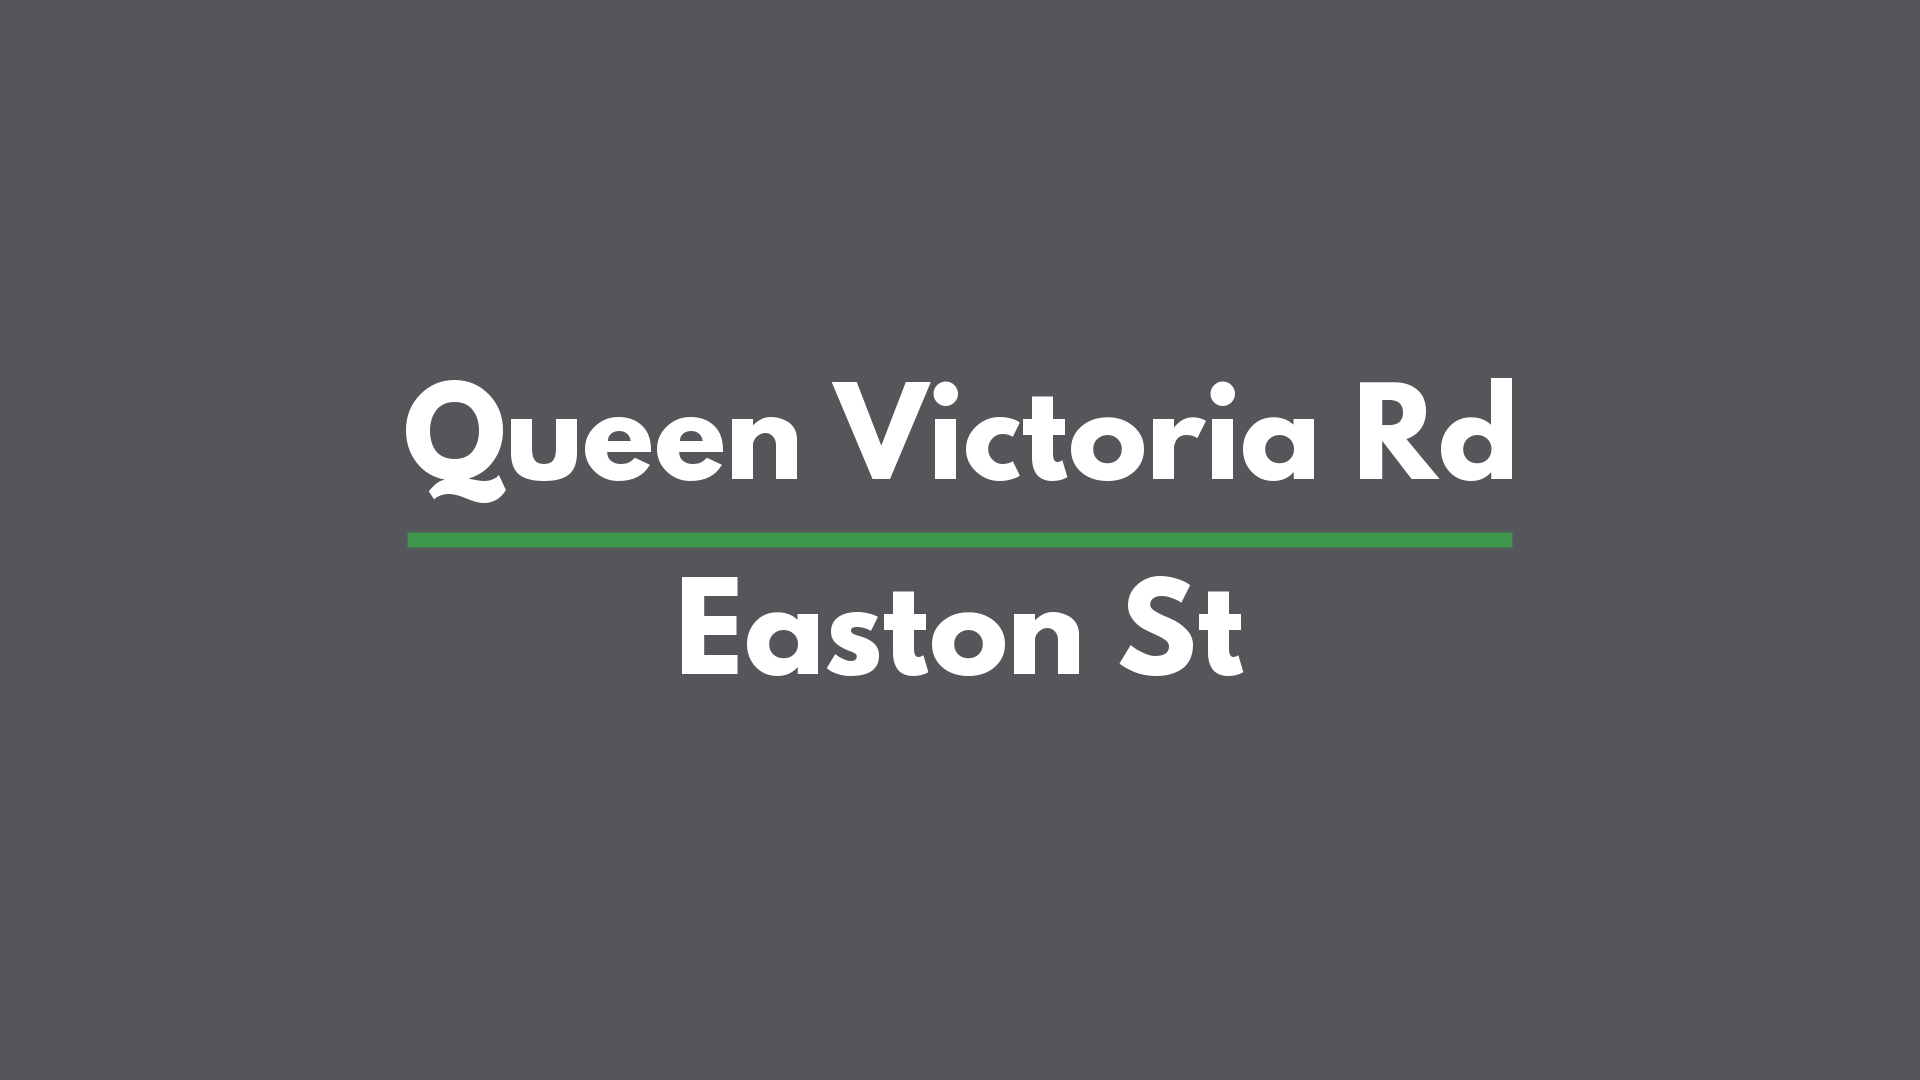 Queen Vic _ Easton St - Two way text